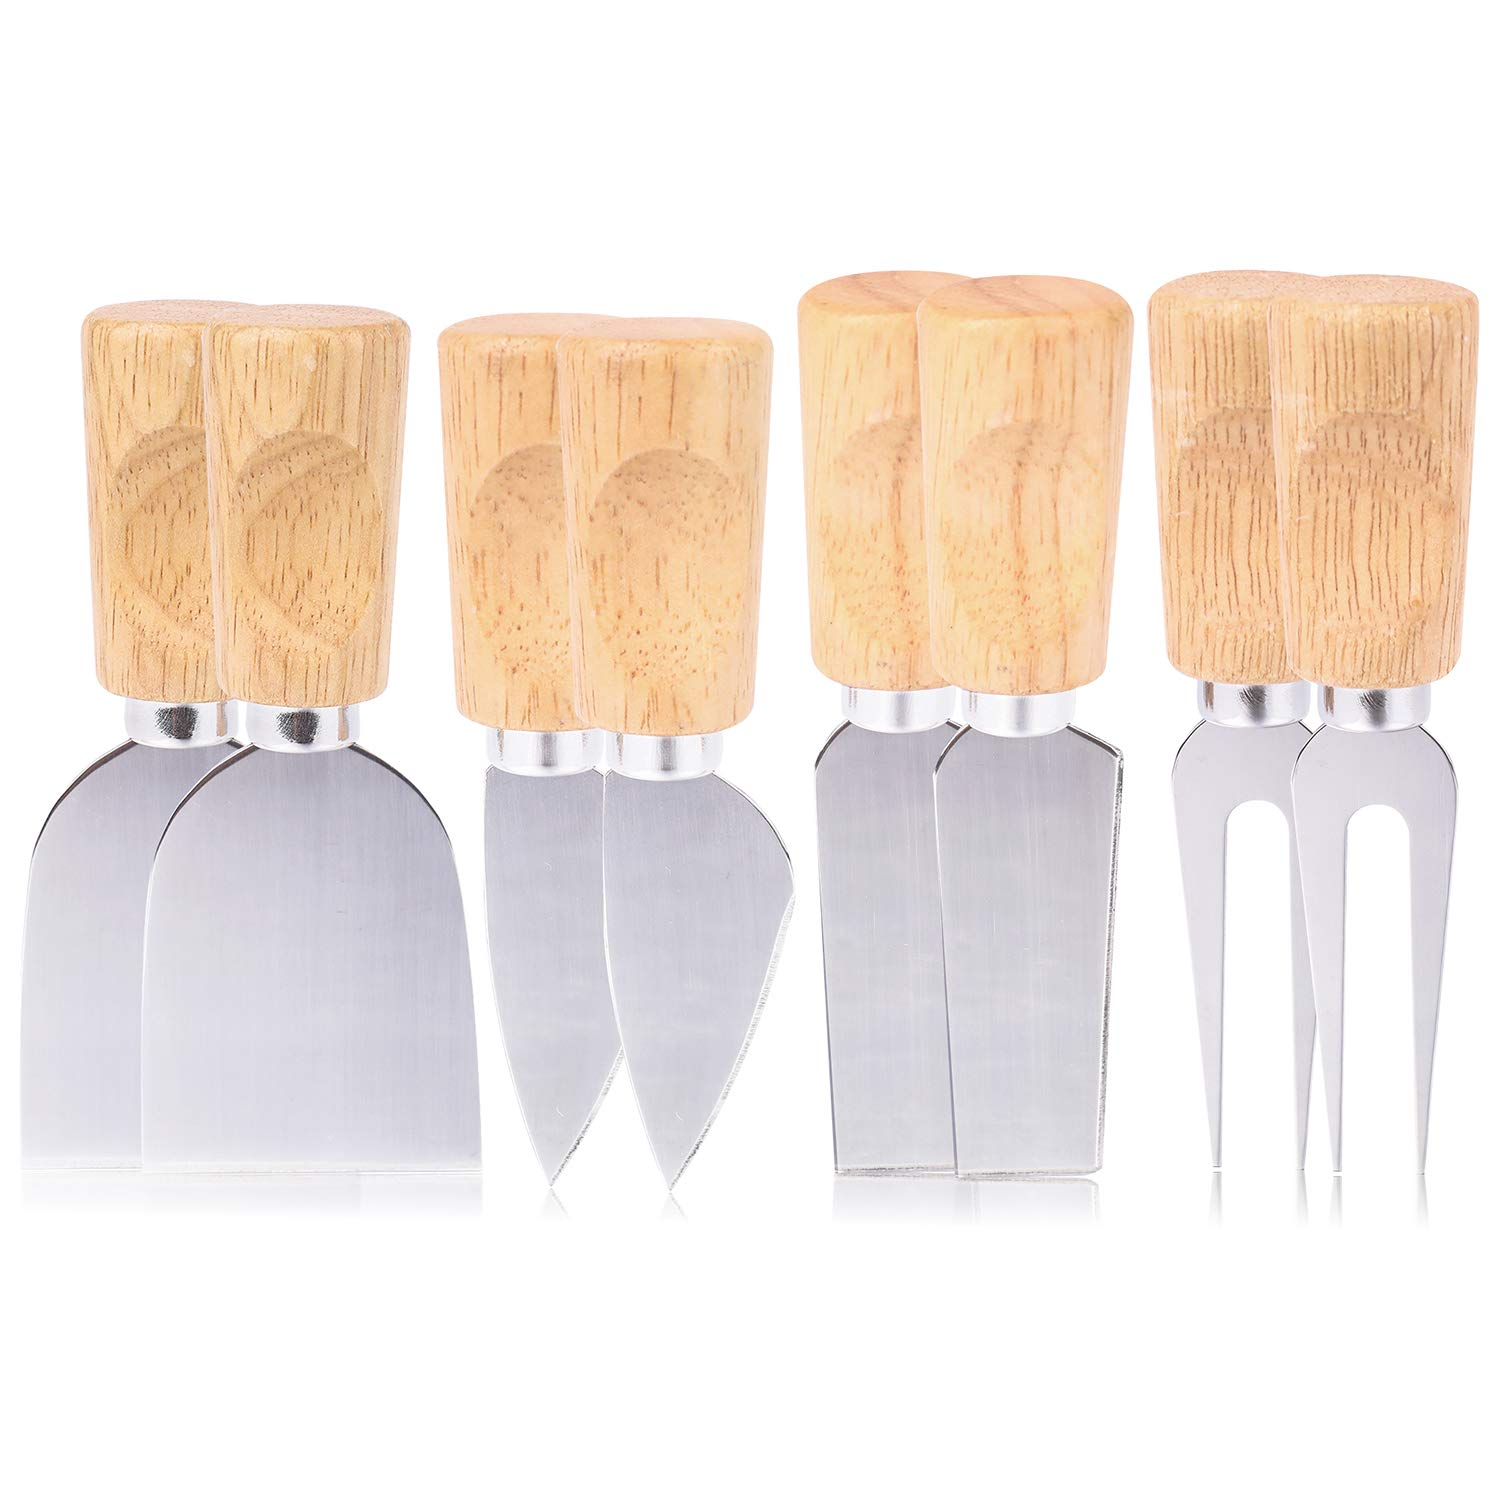 Kingrol 8 Pieces Cheese Knives with Wooden Handles, Cheese Slicer & Cutter Set by Kingrol